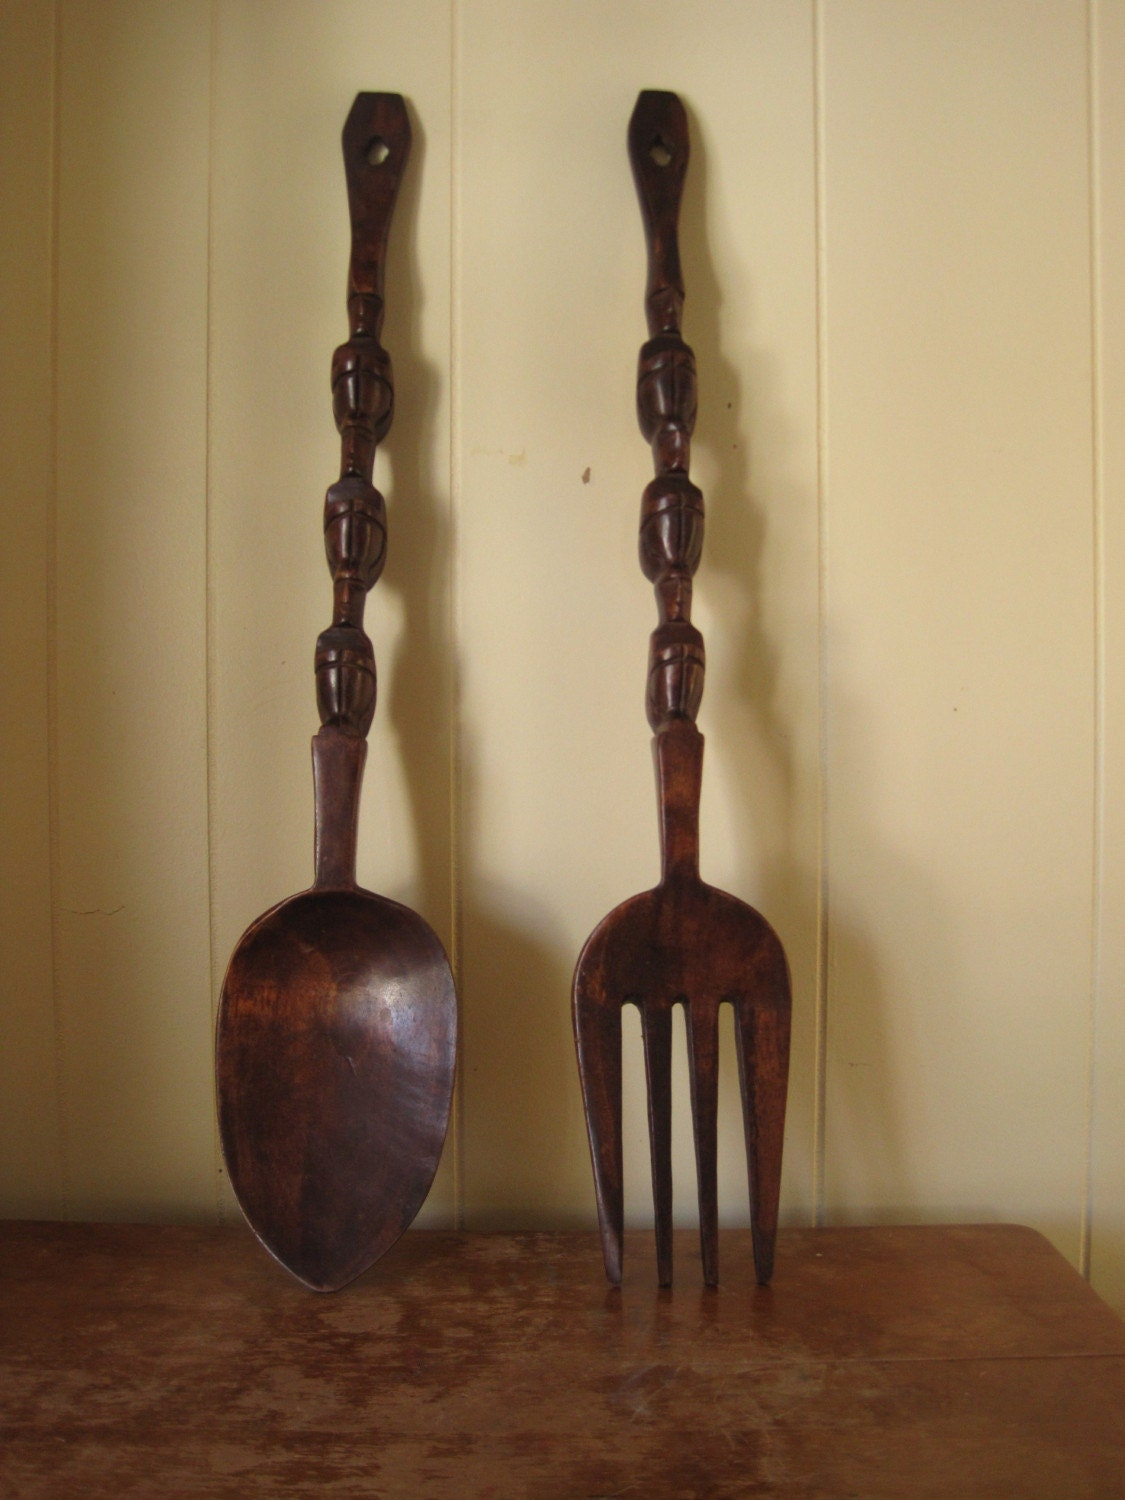 Large Vintage Wall Decor : The big kitschy fork and spoon vintage wall decor